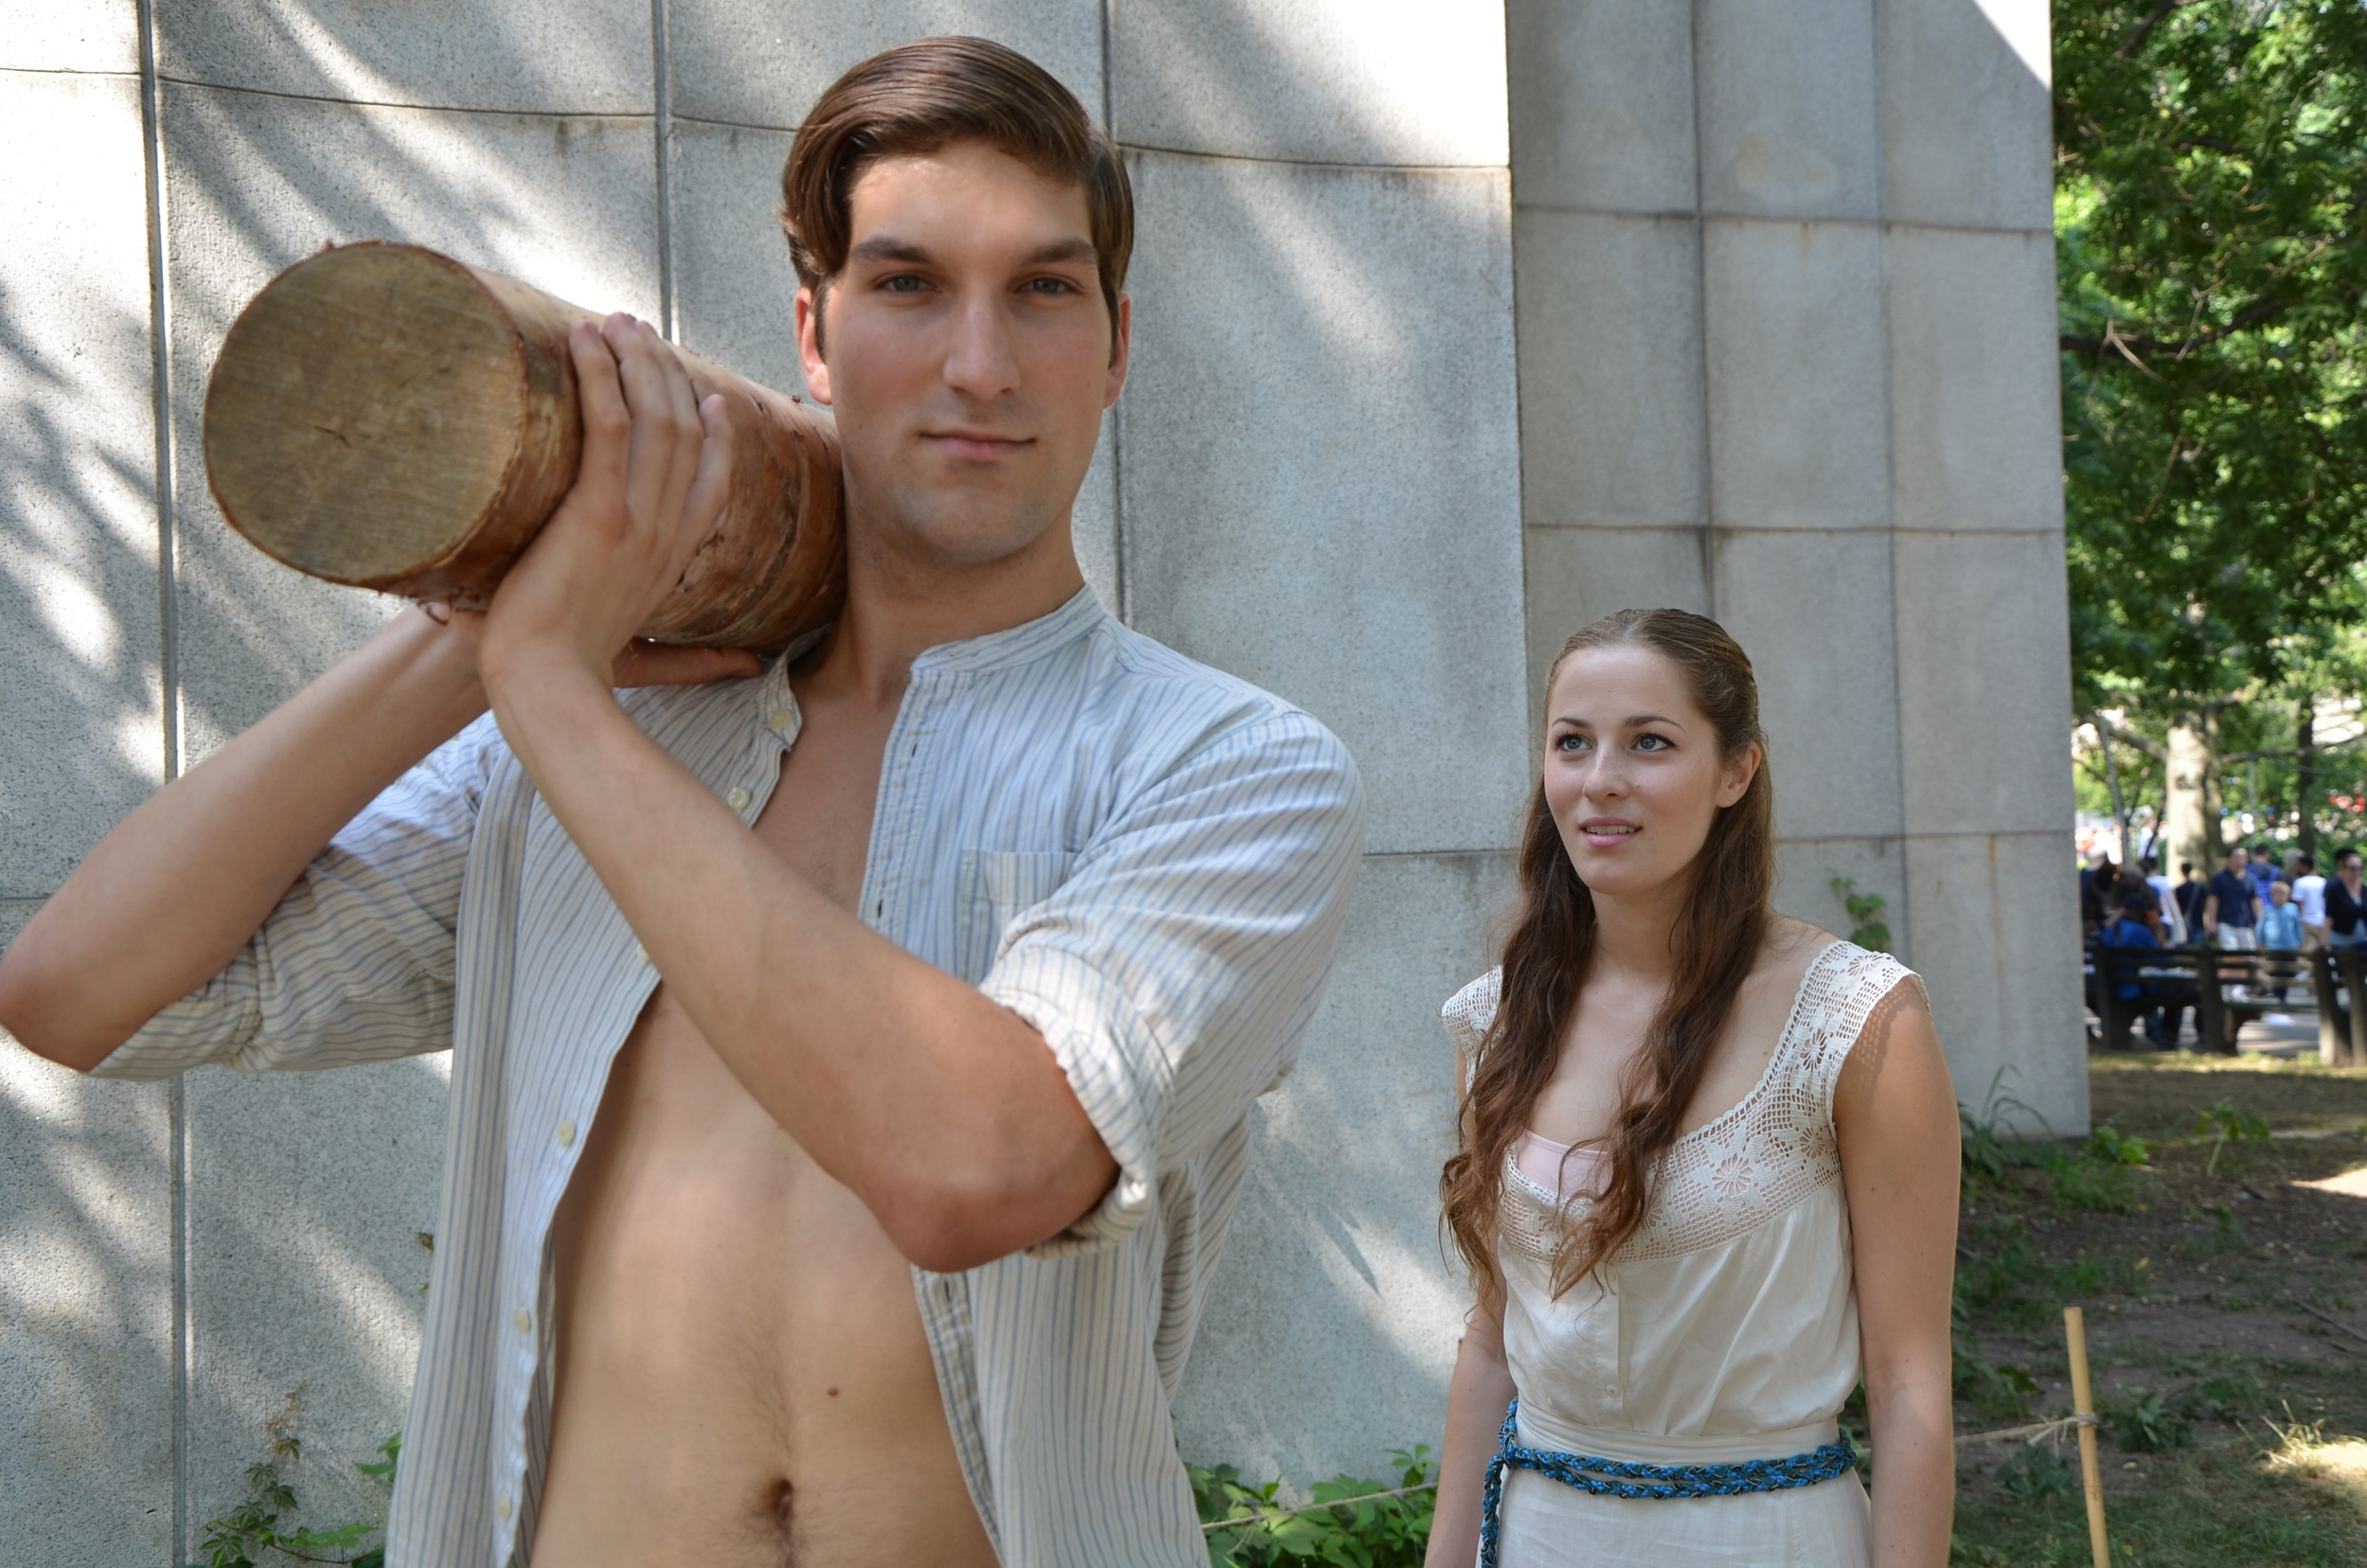 New York Classical Theatre free Shakespeare in the park The Tempest